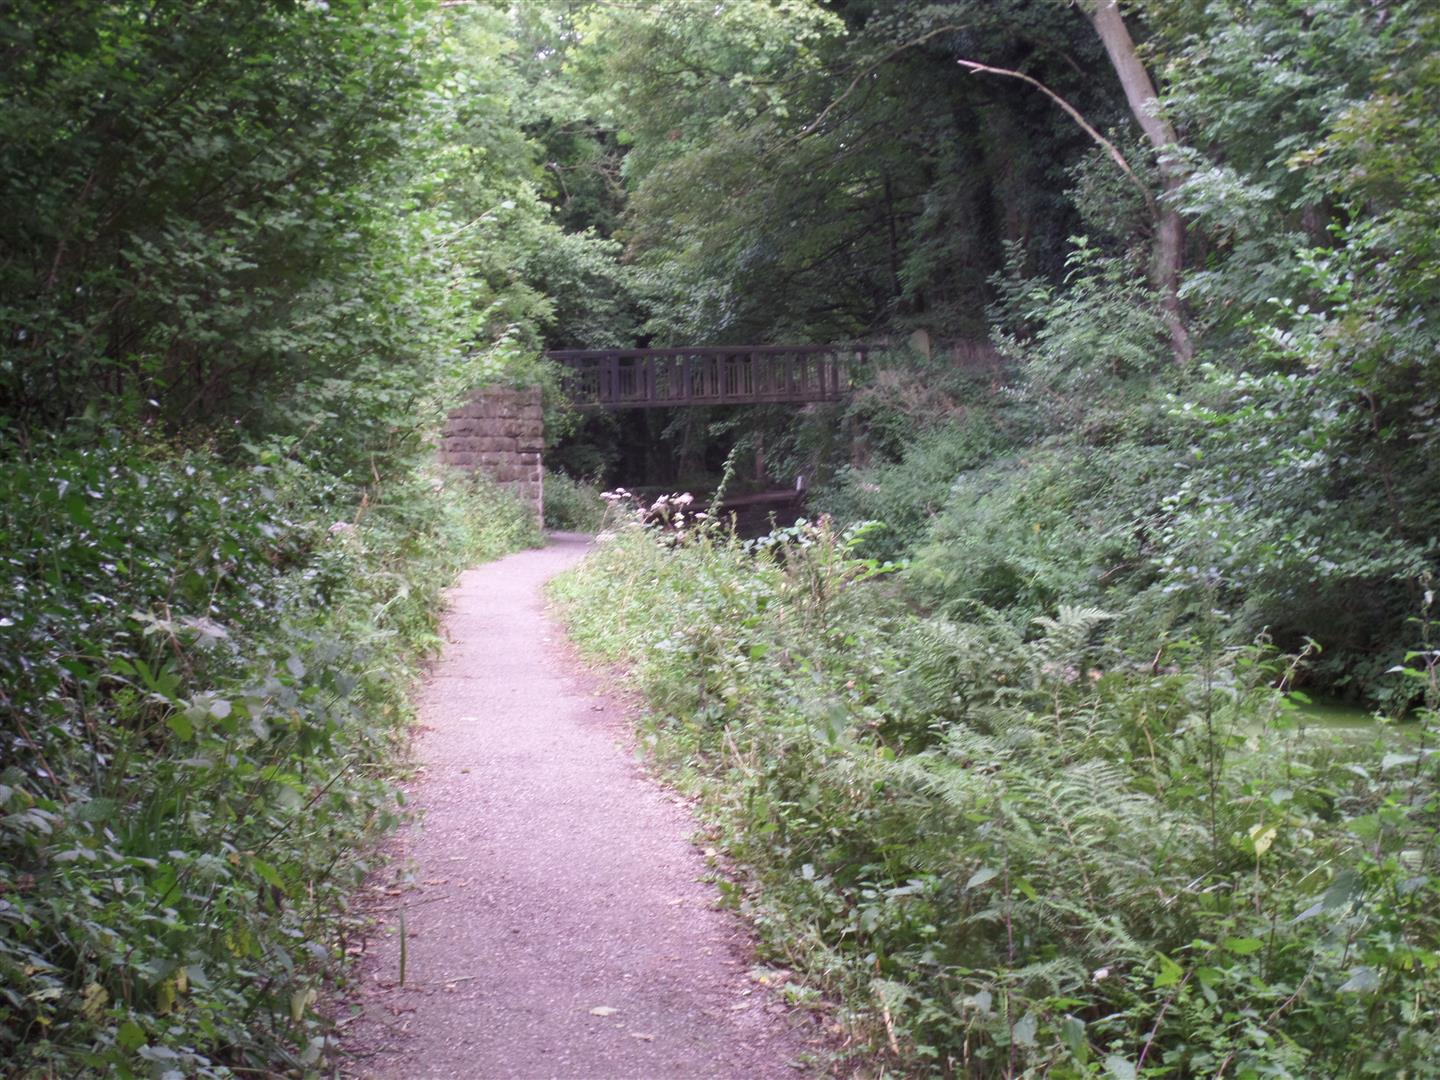 Footbridge over the Cromford Canal